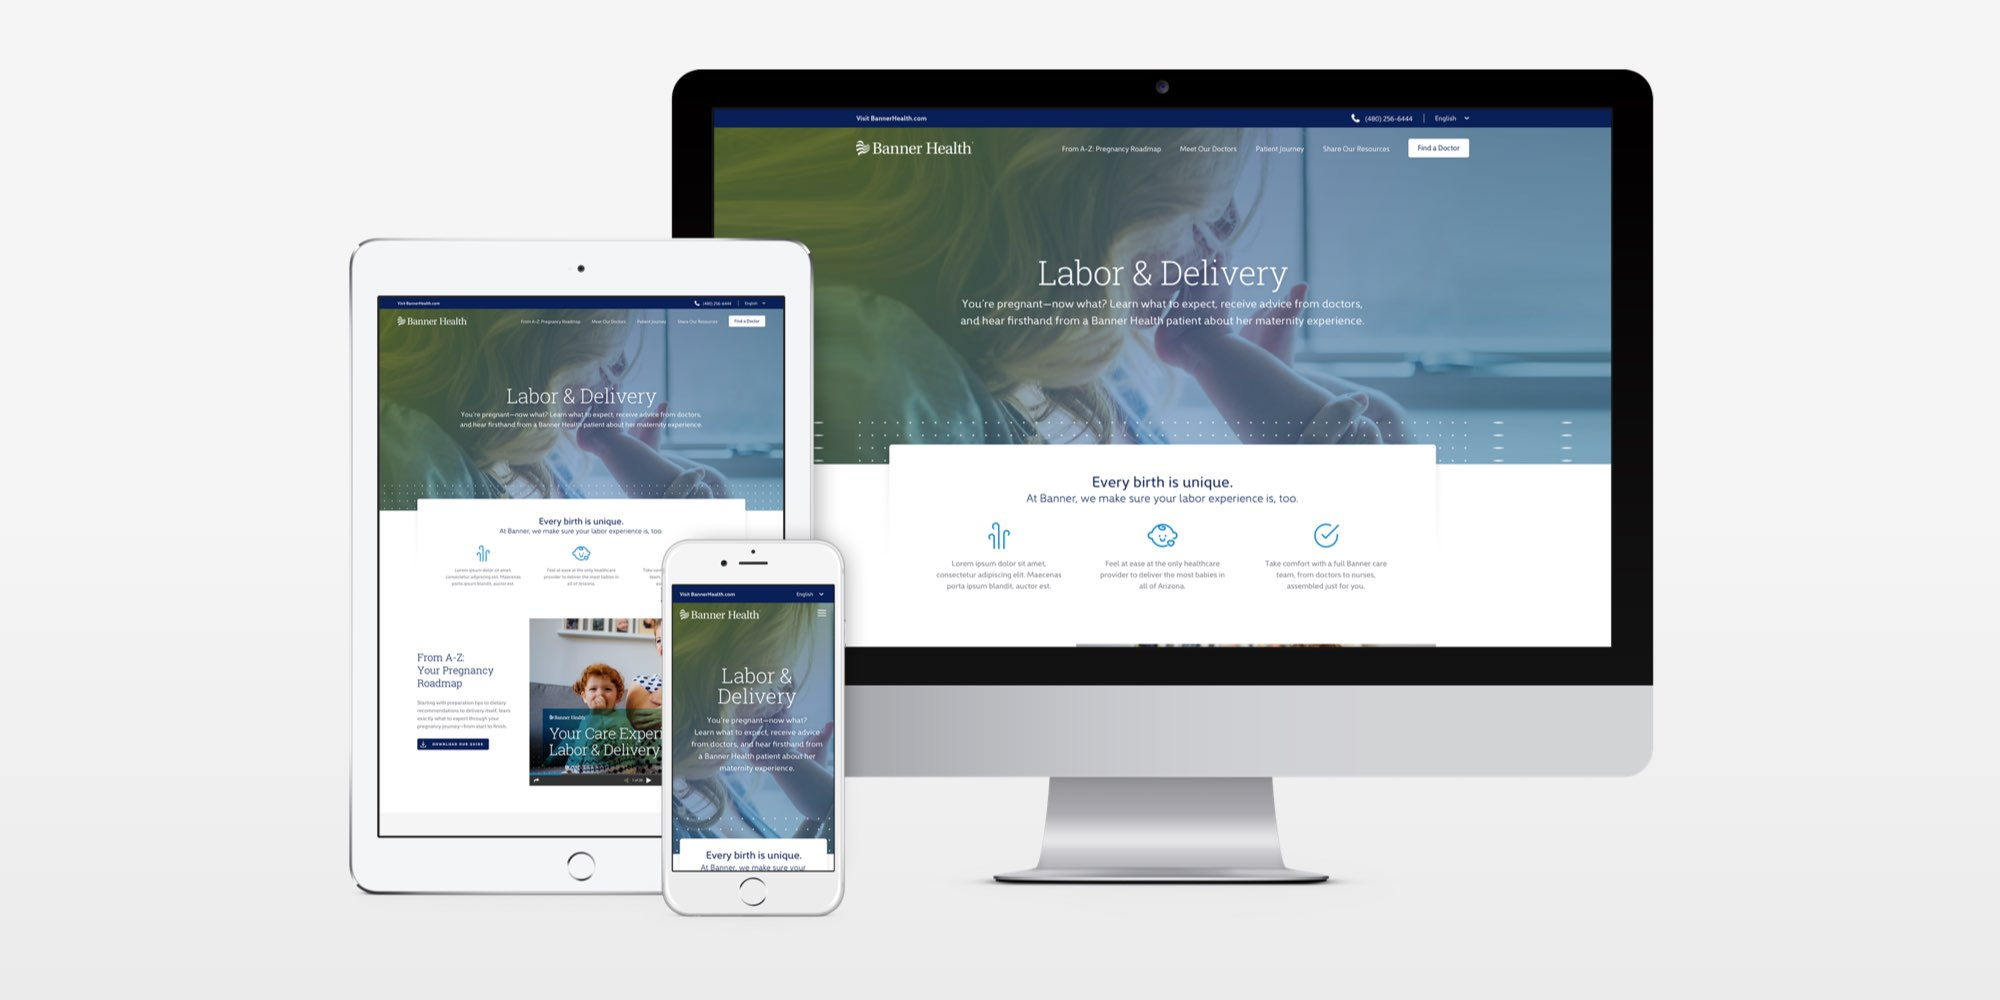 Banner Health Landing Pages show on device